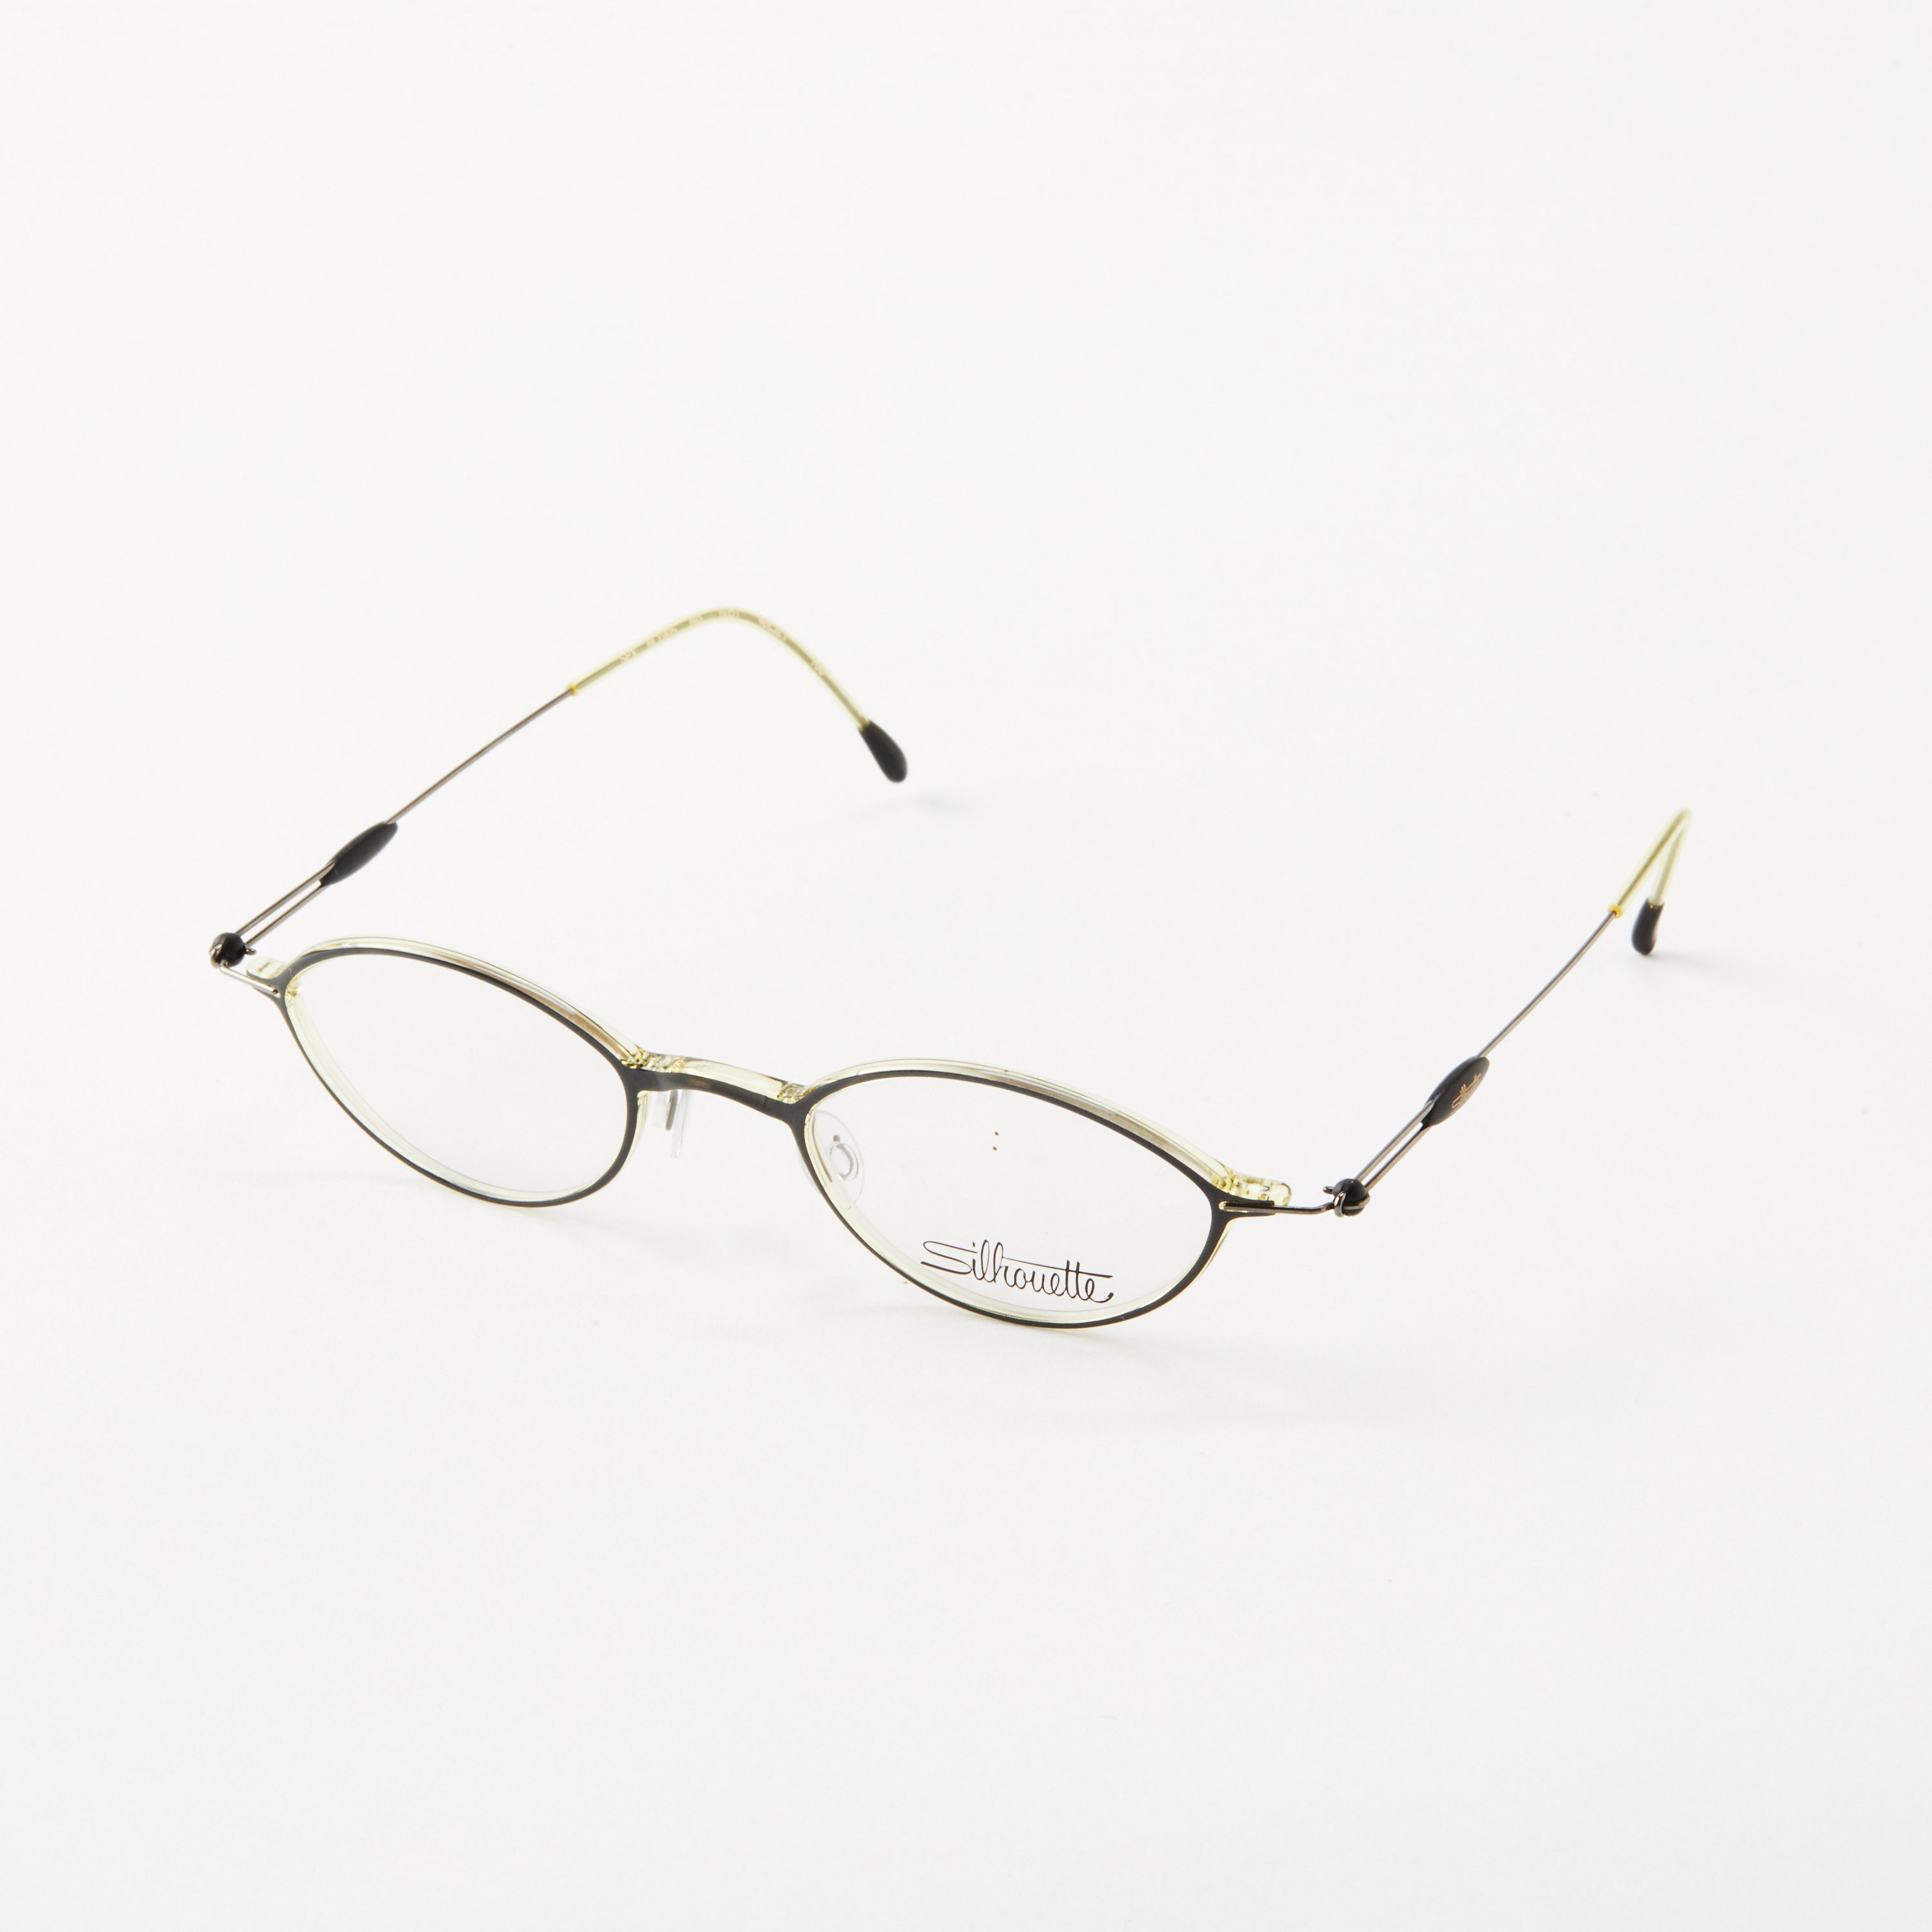 Vintage Silhouette Eye Glasses Clear Frame With Green And Gold